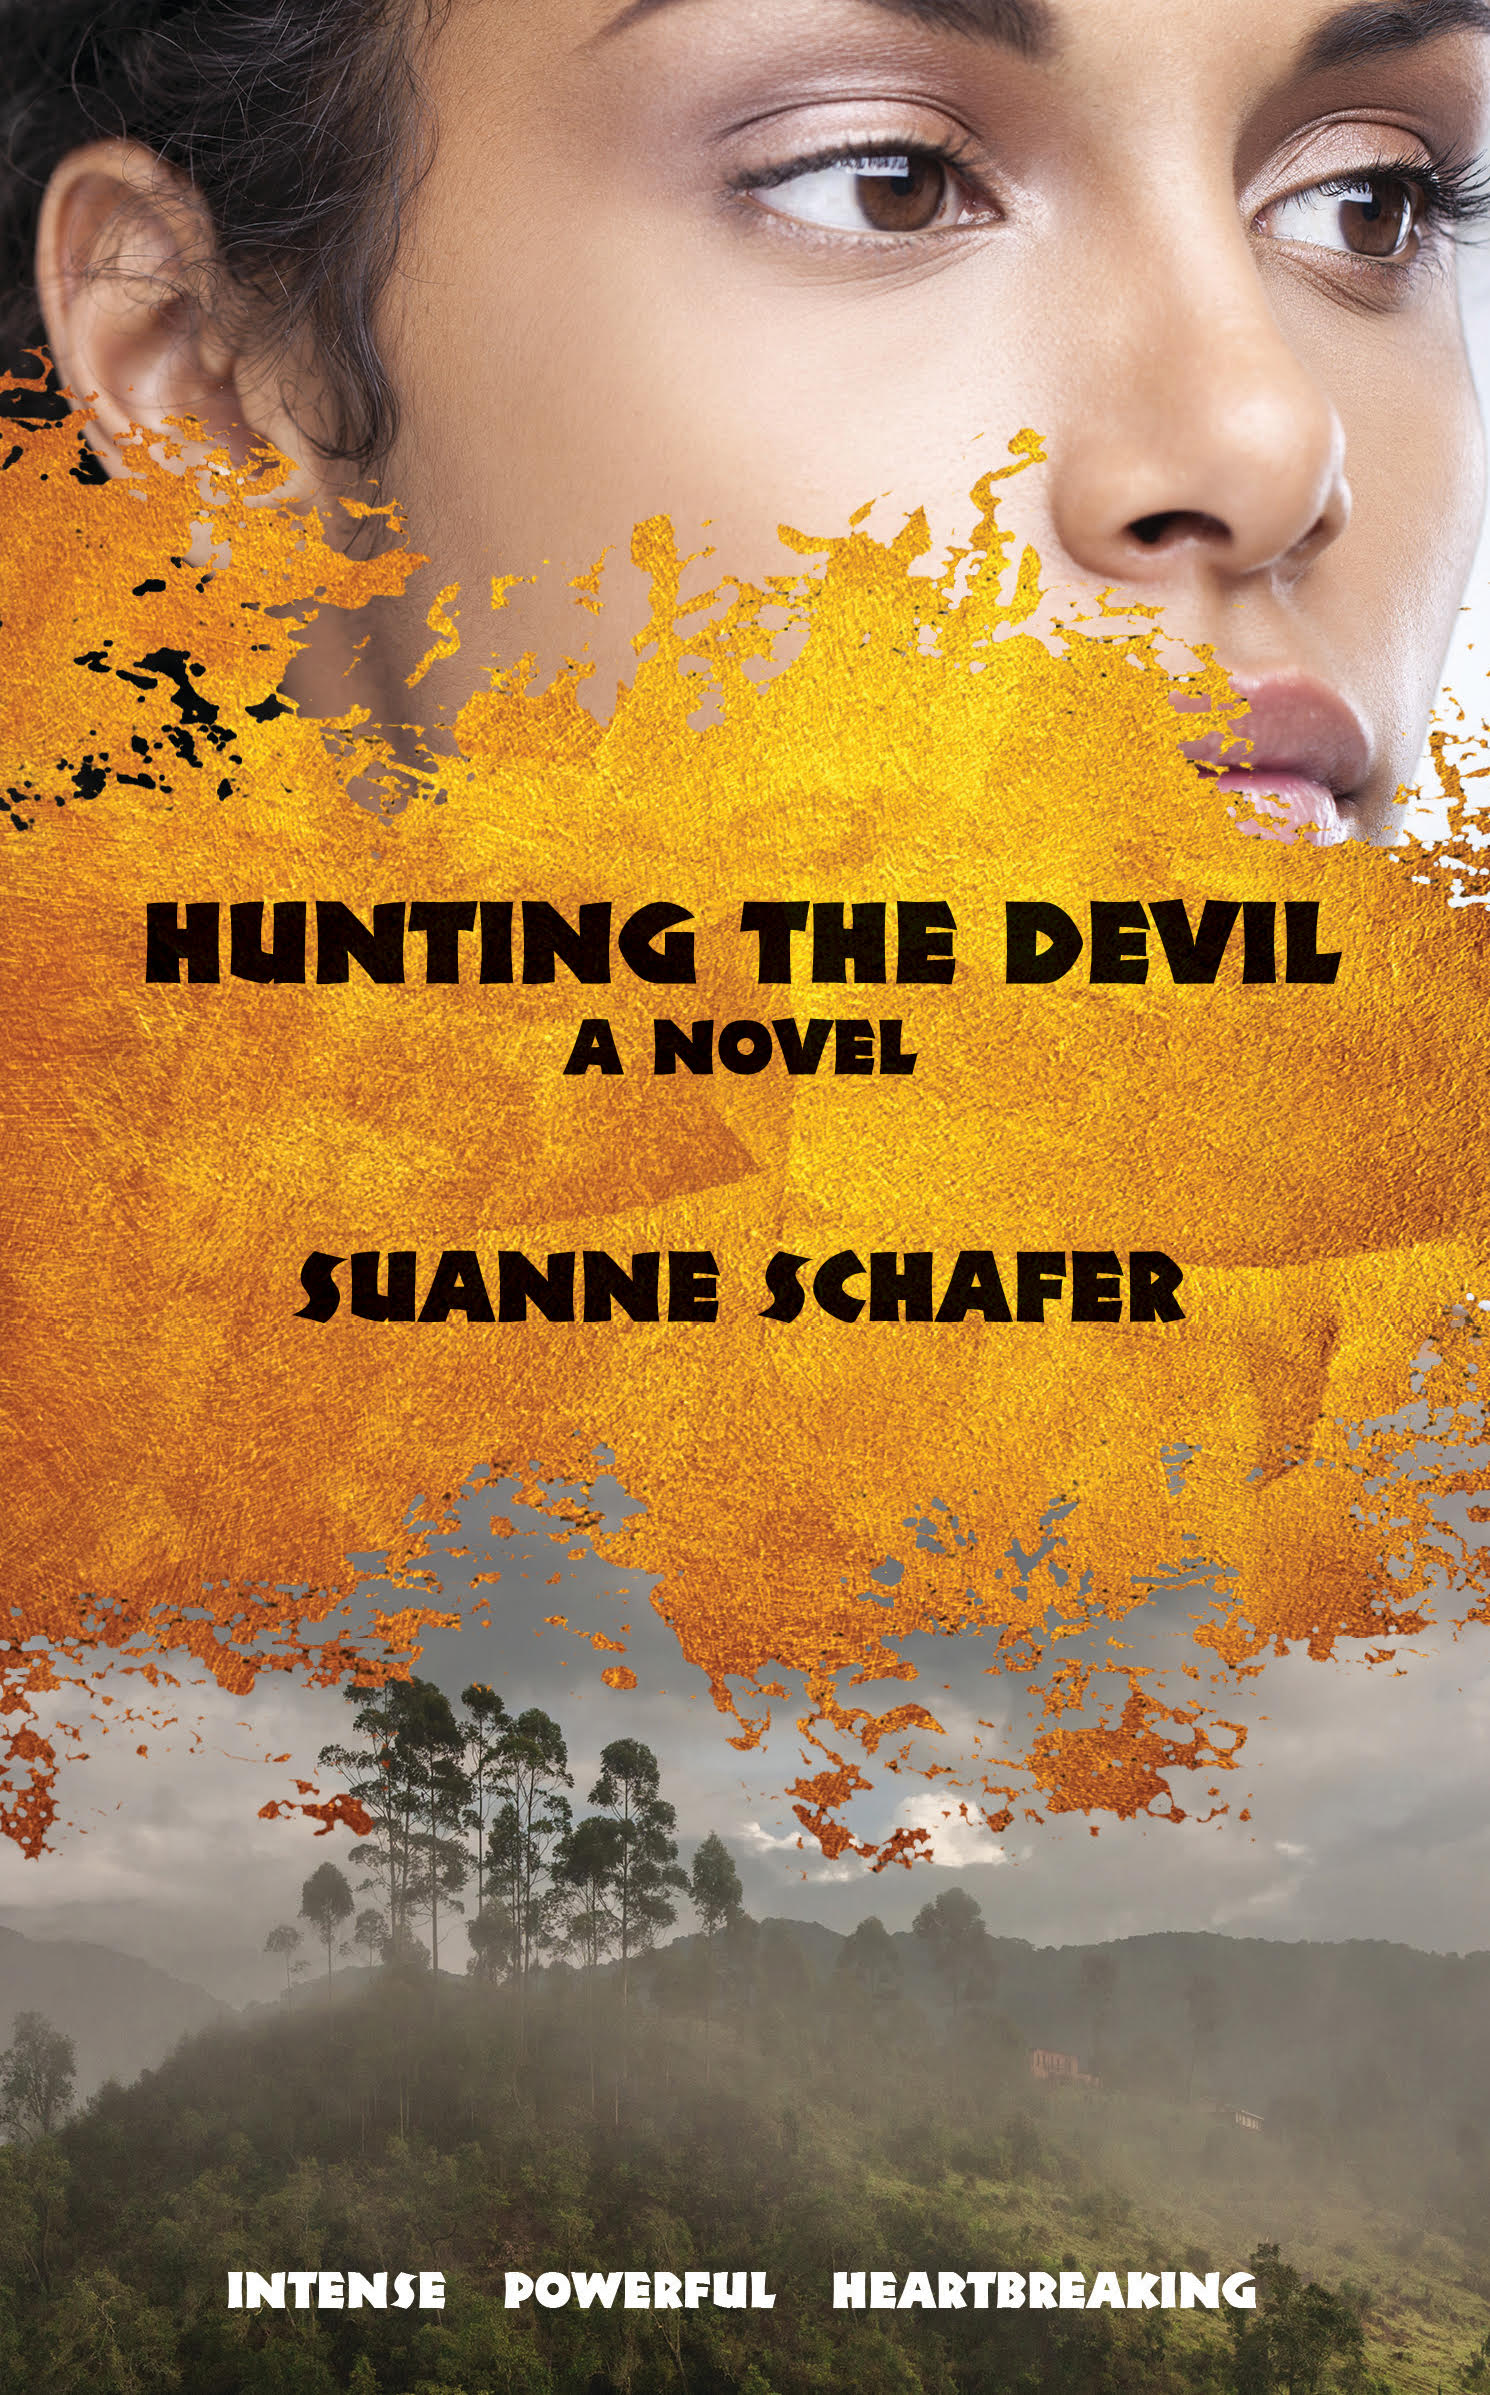 HUNTING THE DEVIL